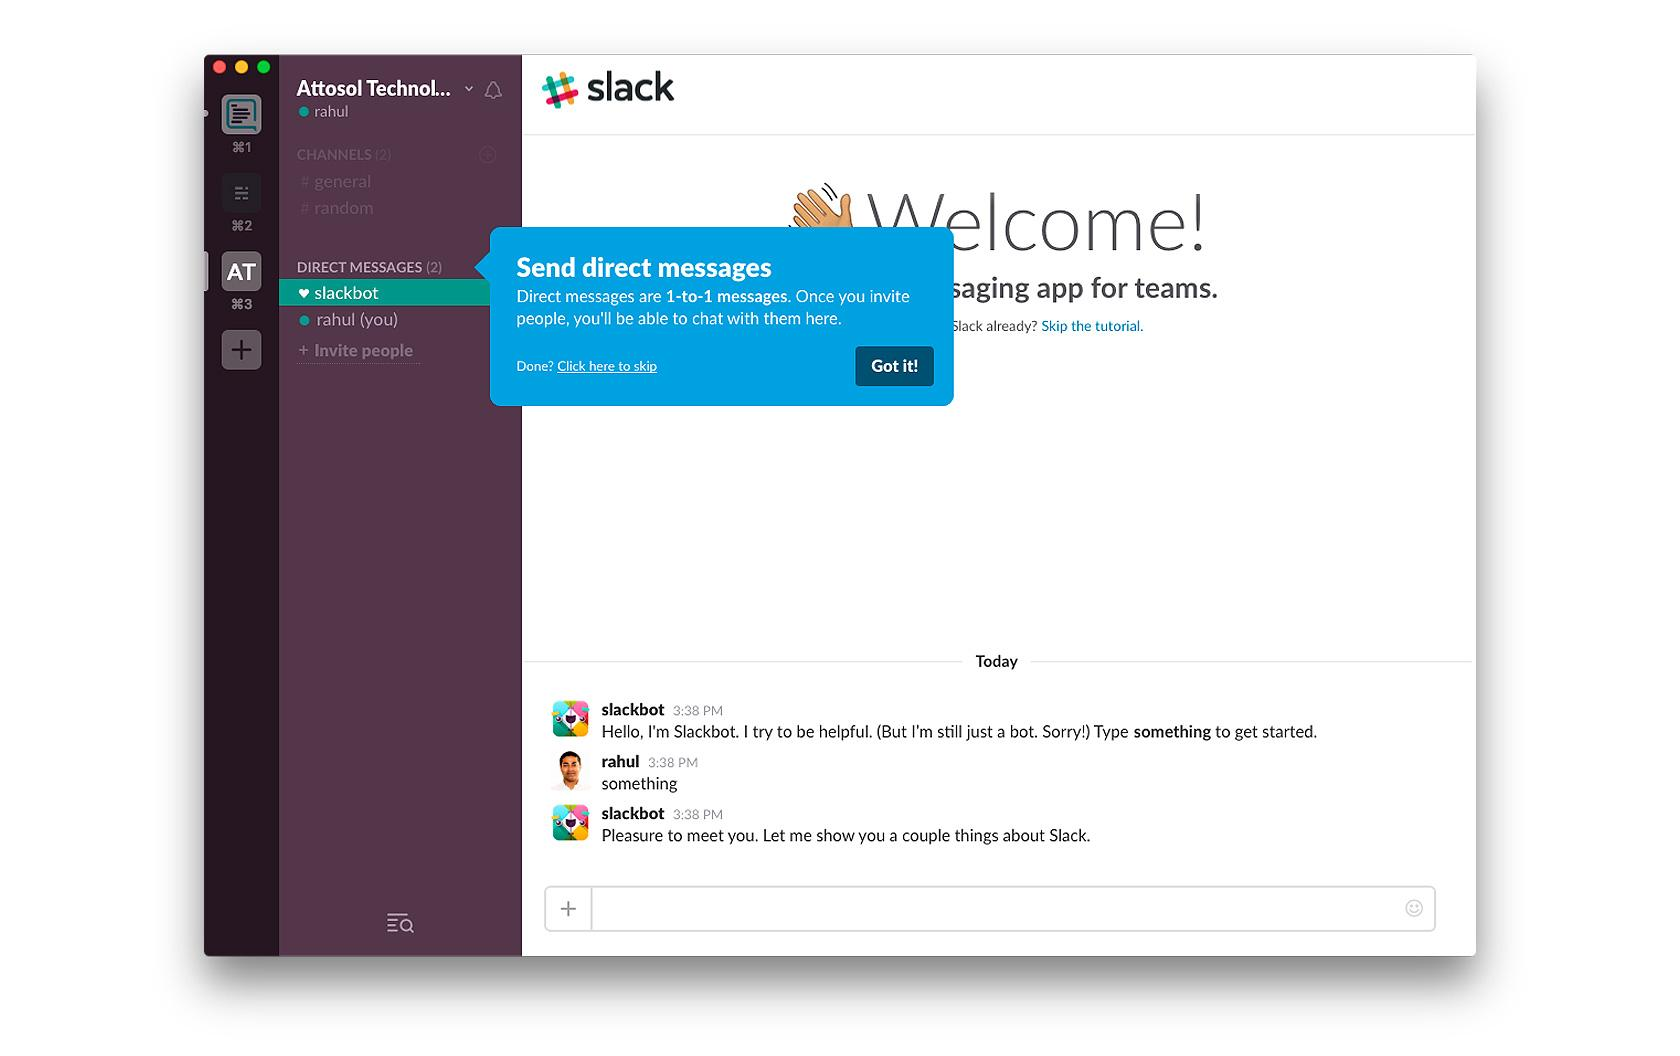 slack's friendly onboarding flow uses tutorial-like game design patterns